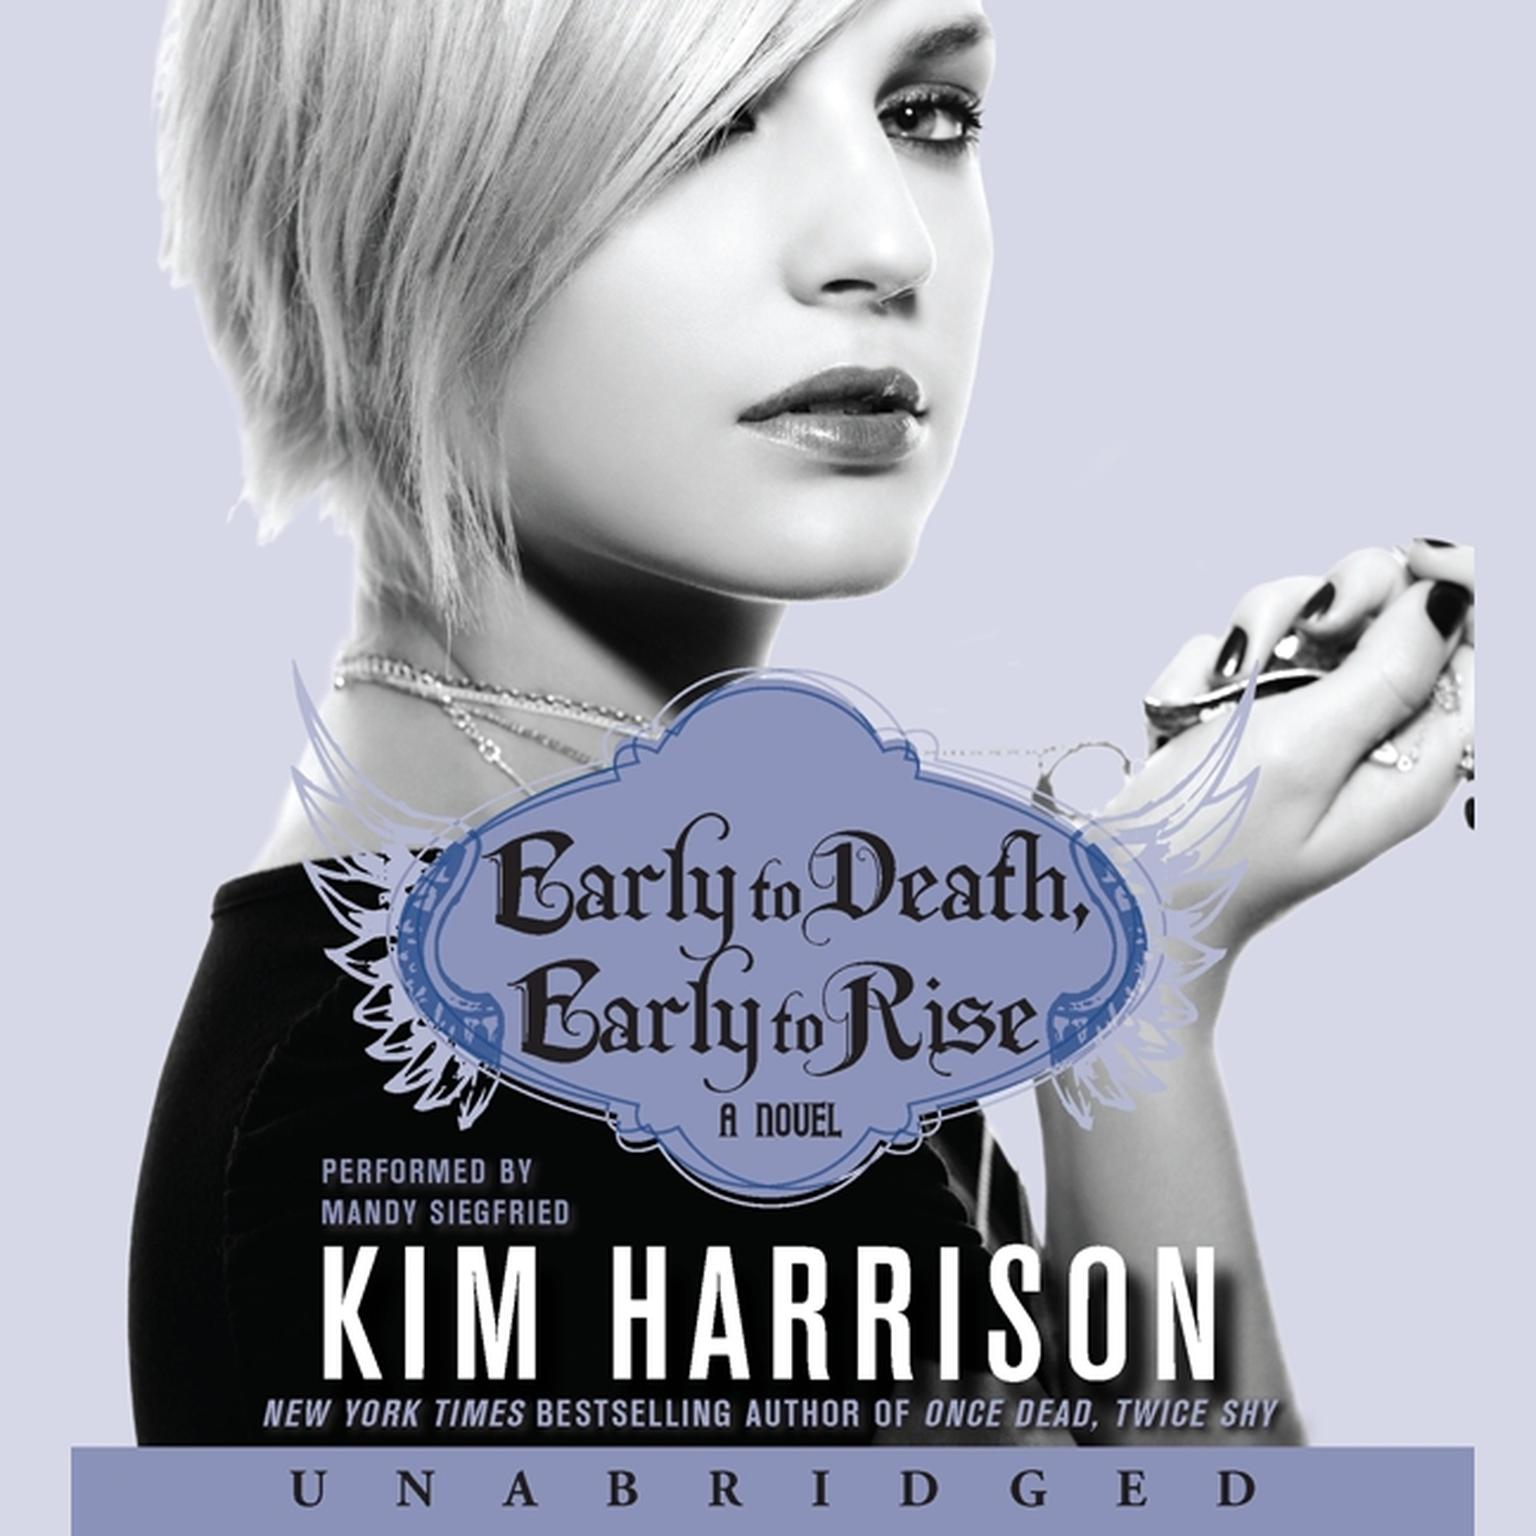 Printable Early to Death, Early to Rise Audiobook Cover Art